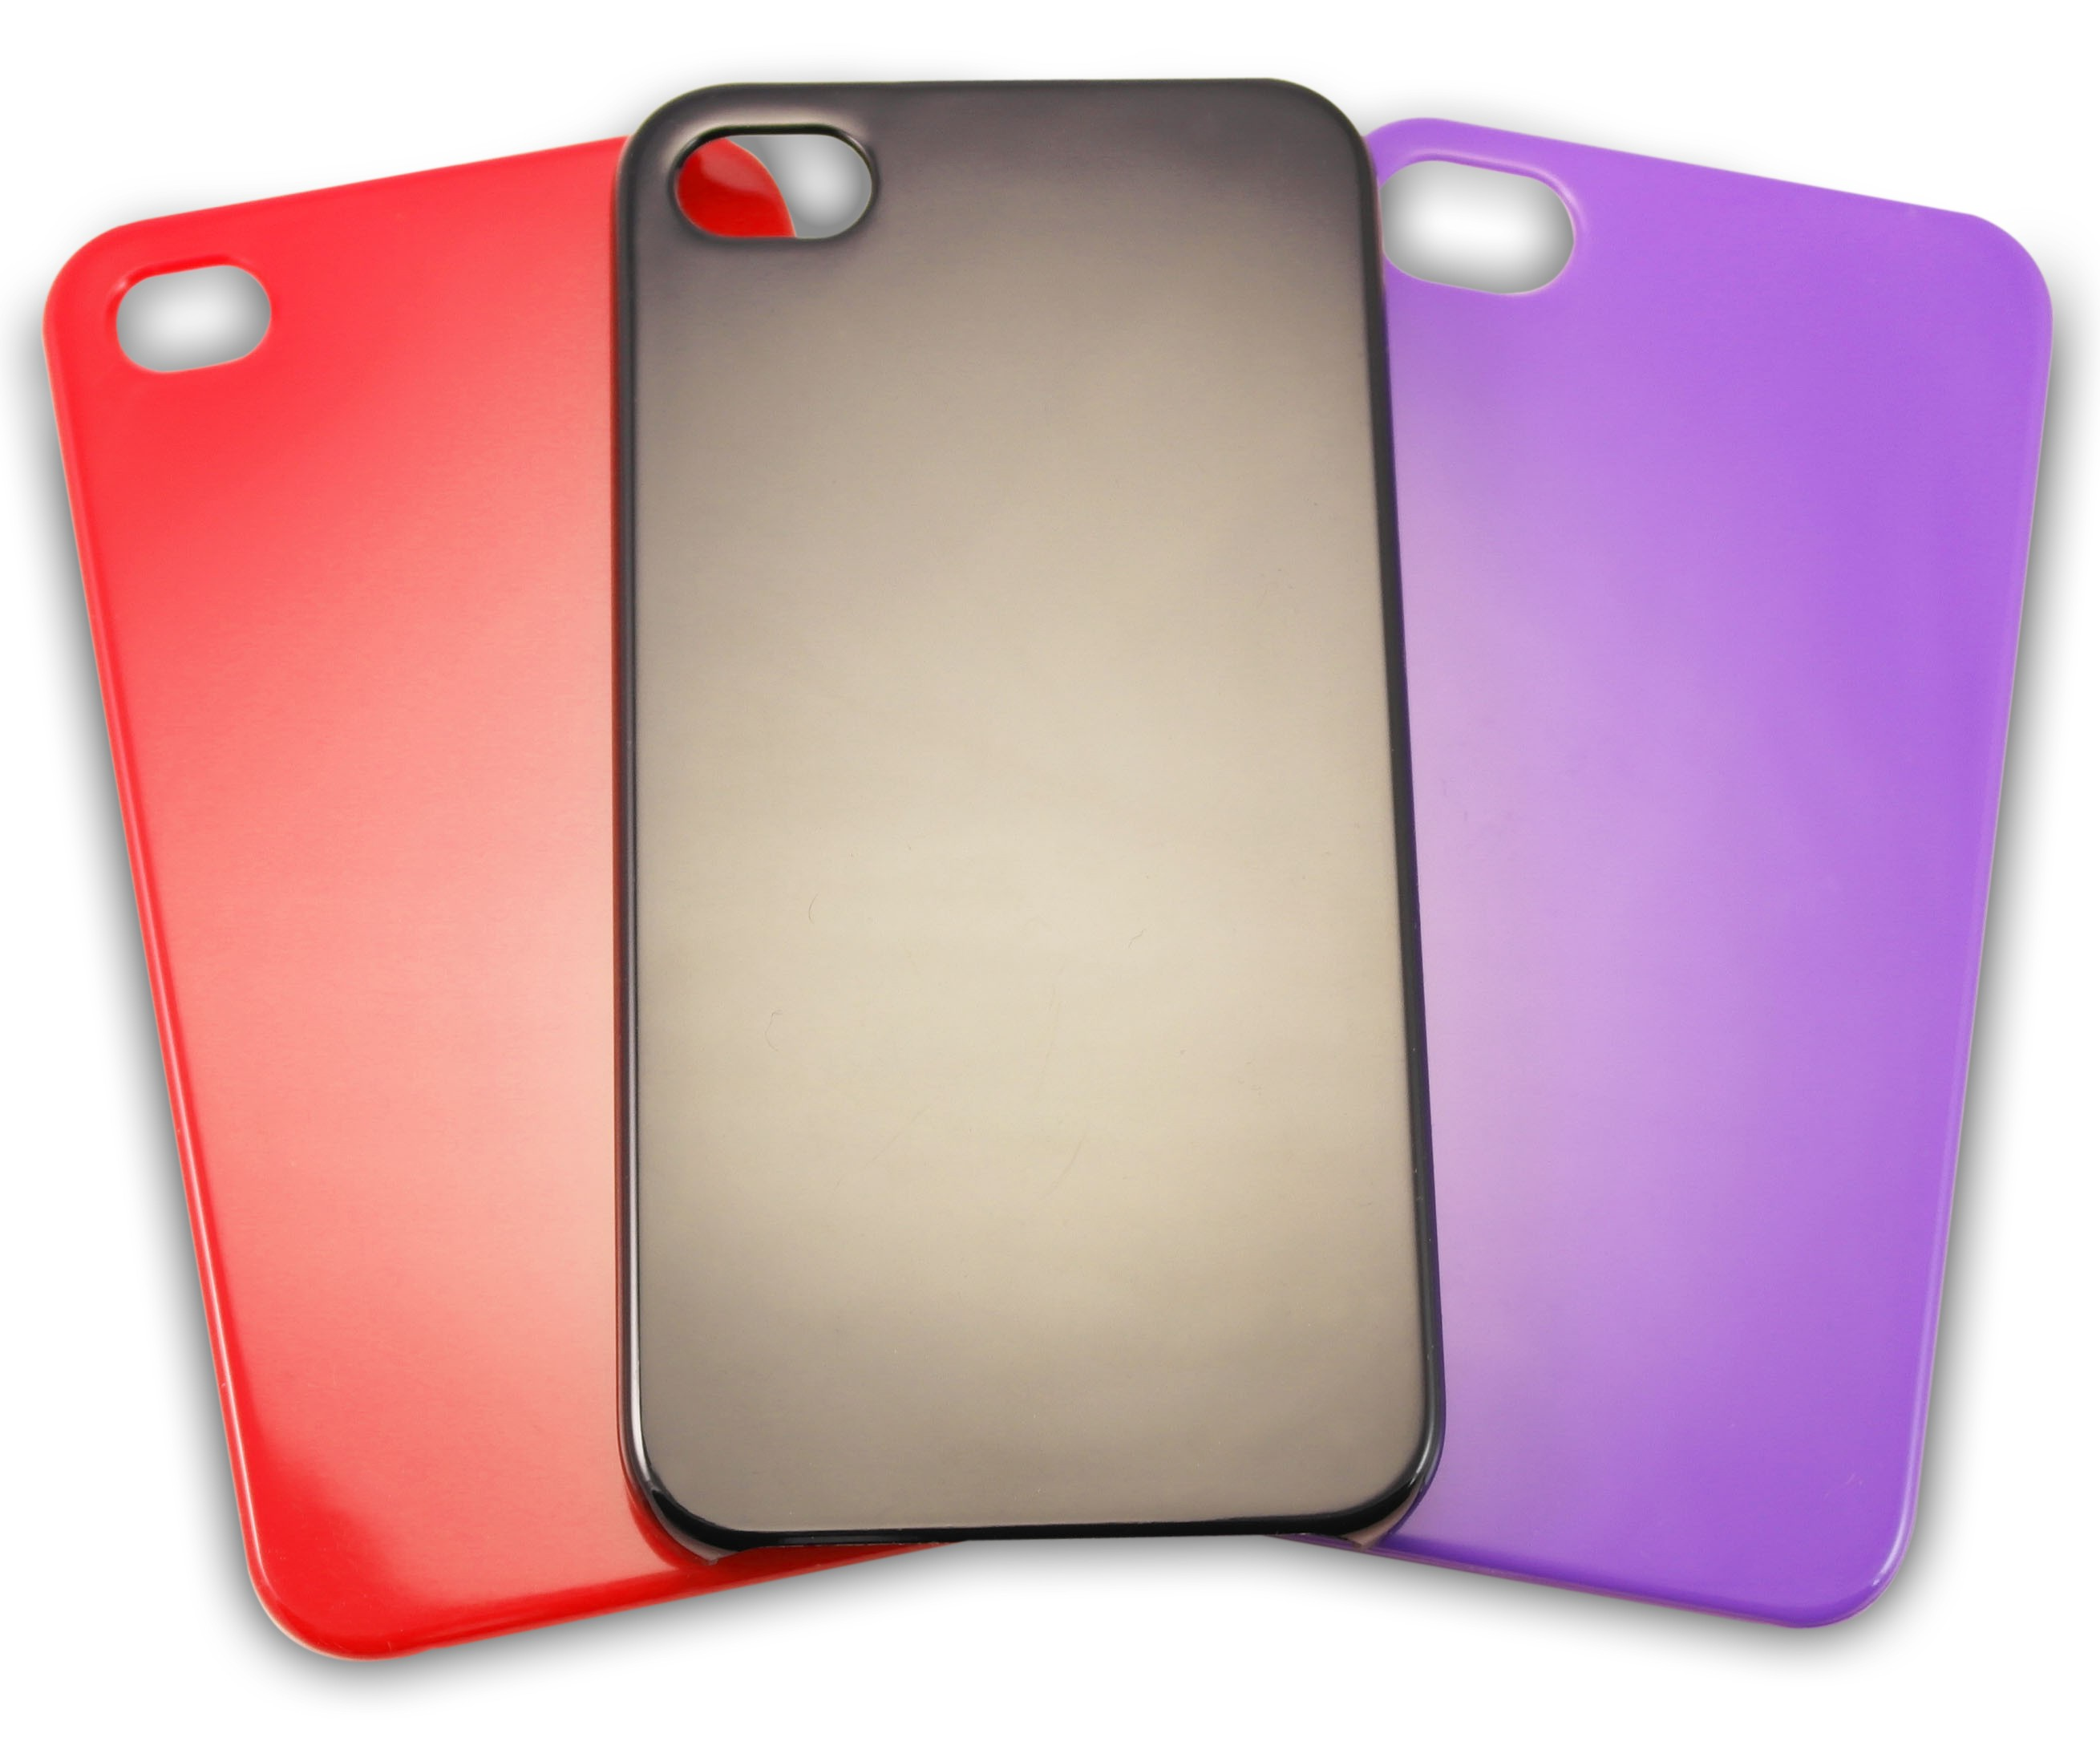 Protect Your Smartphone With The Right Cover or Case